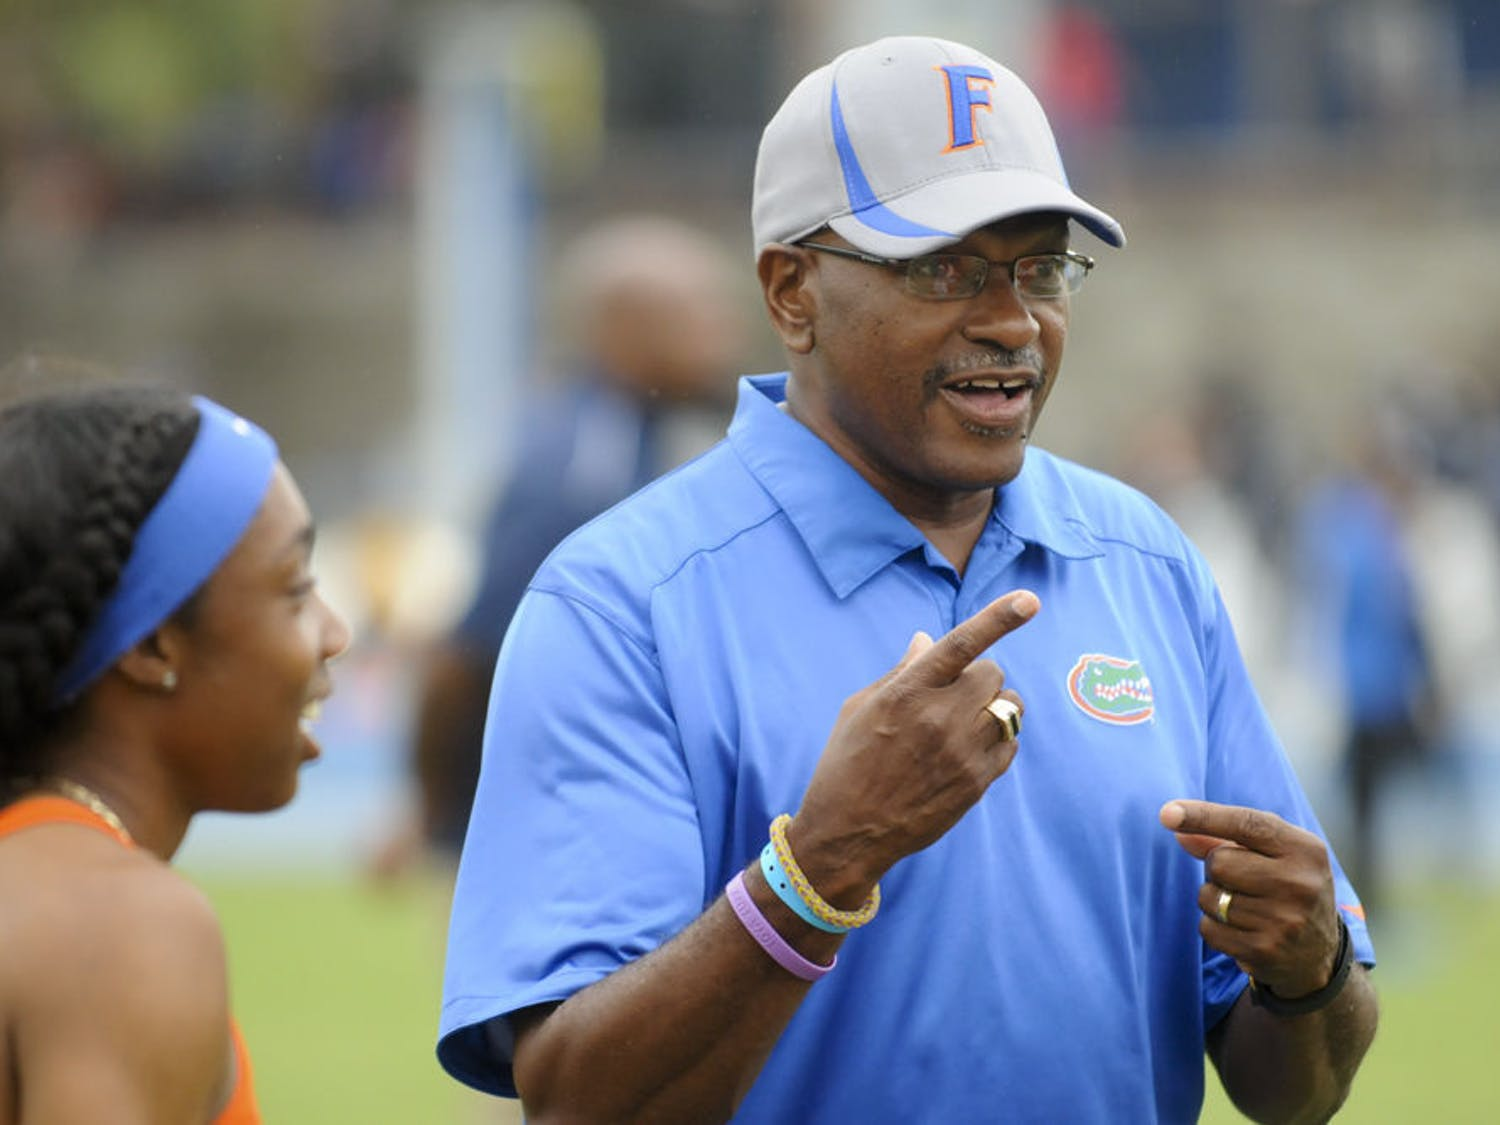 """Coach Mike Holloway's men's (No. 1) and women's (No. 4) indoor teams will look to capitalize on a fast start to their seasons.""""We always talk about leaving your failures (and) successes in the building,"""" Holloway said. """"Our mindset is always that we're just trying to get better."""""""